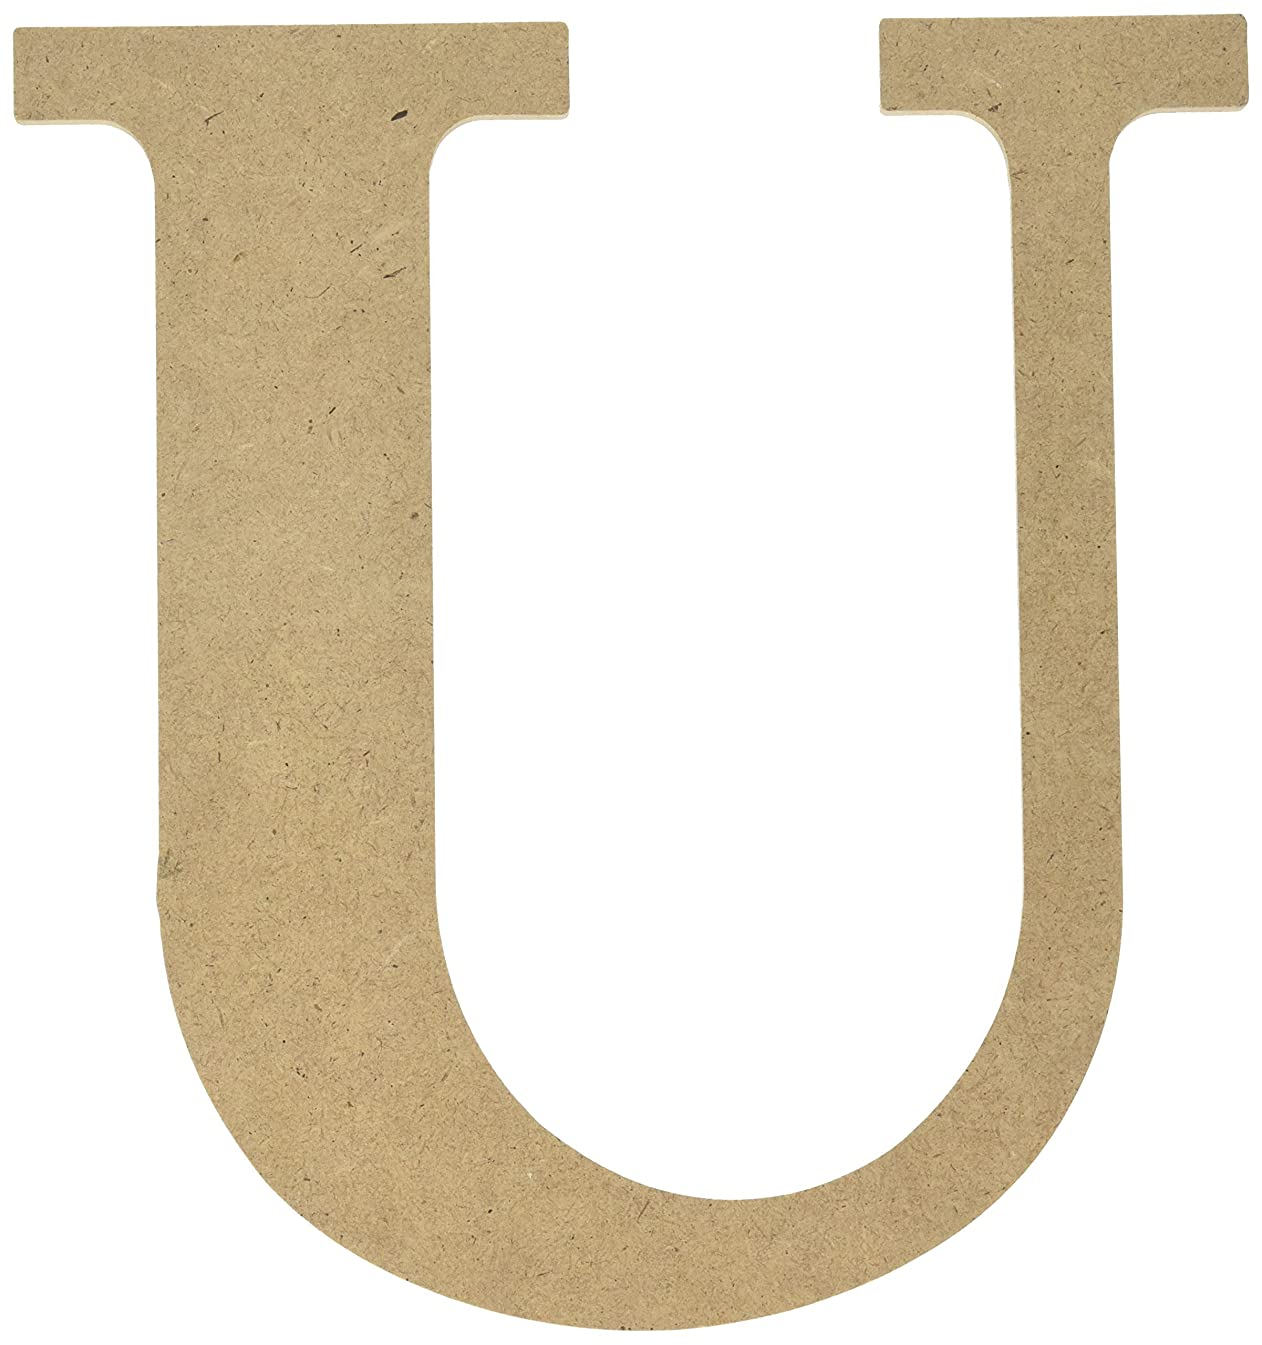 MPI MDF Classic Font Wood Letters and Numbers, 9.5-Inch, Letter-U